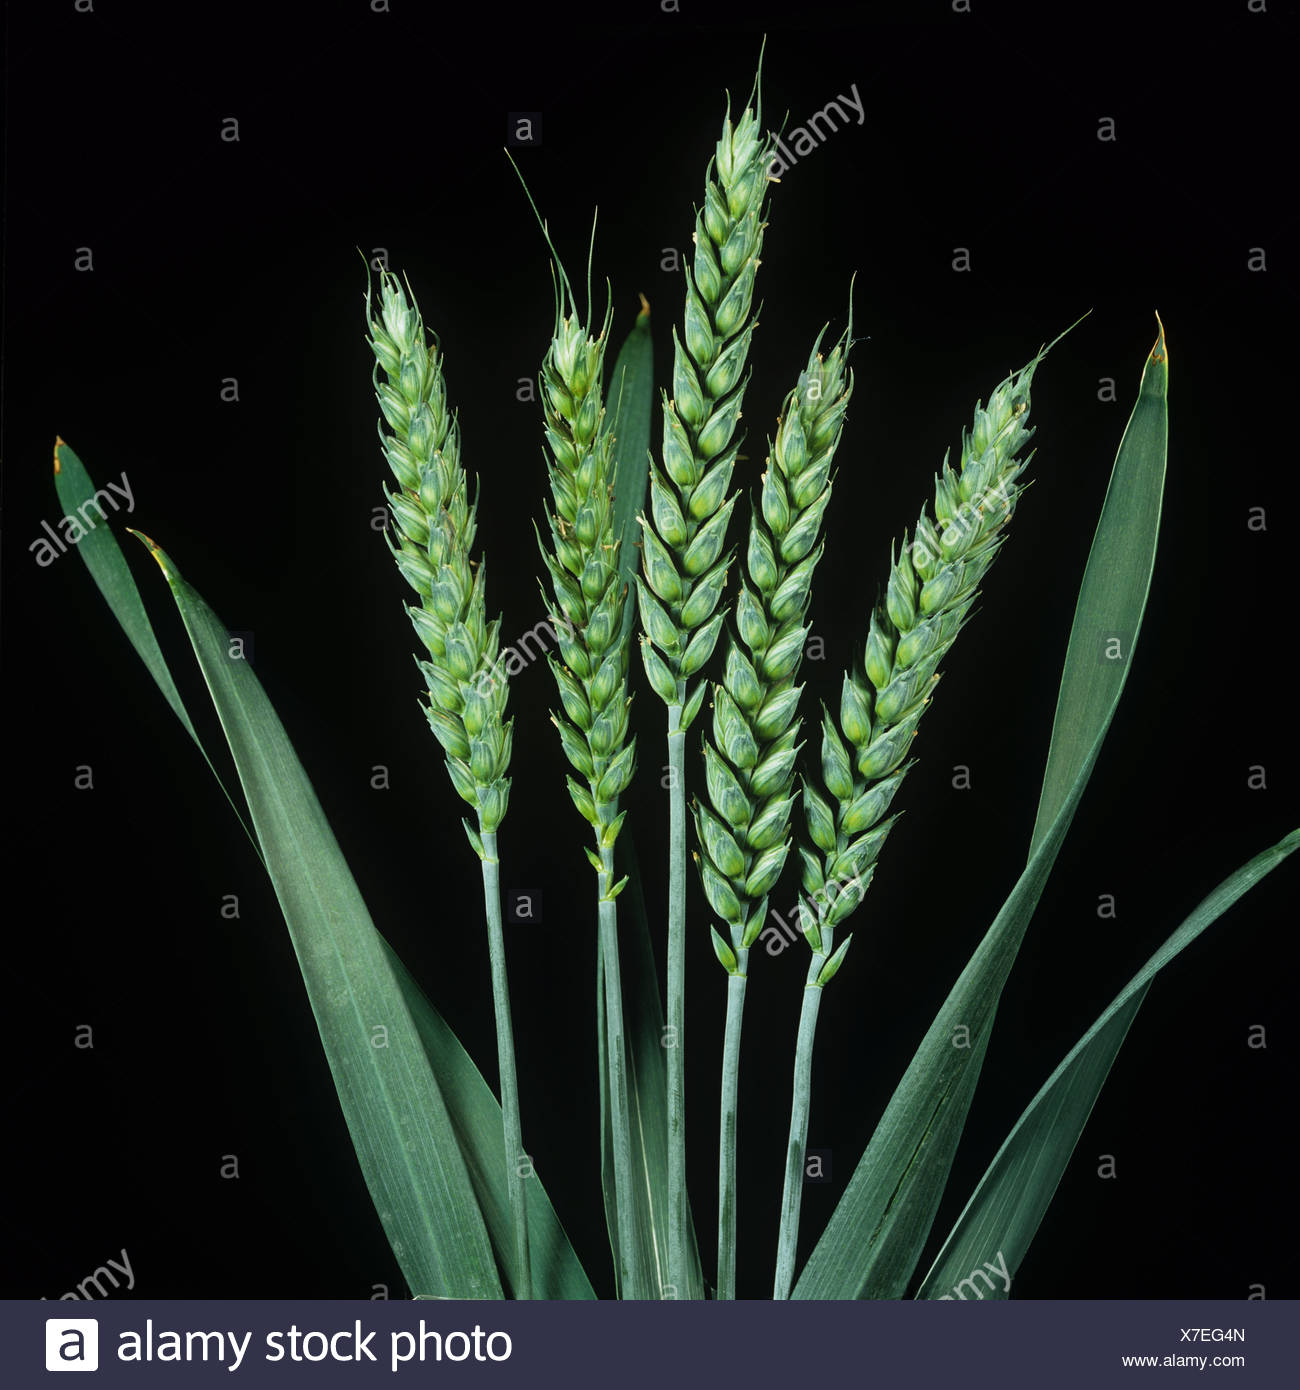 Close up unripe green wheat ears against a studio black background - Stock Image